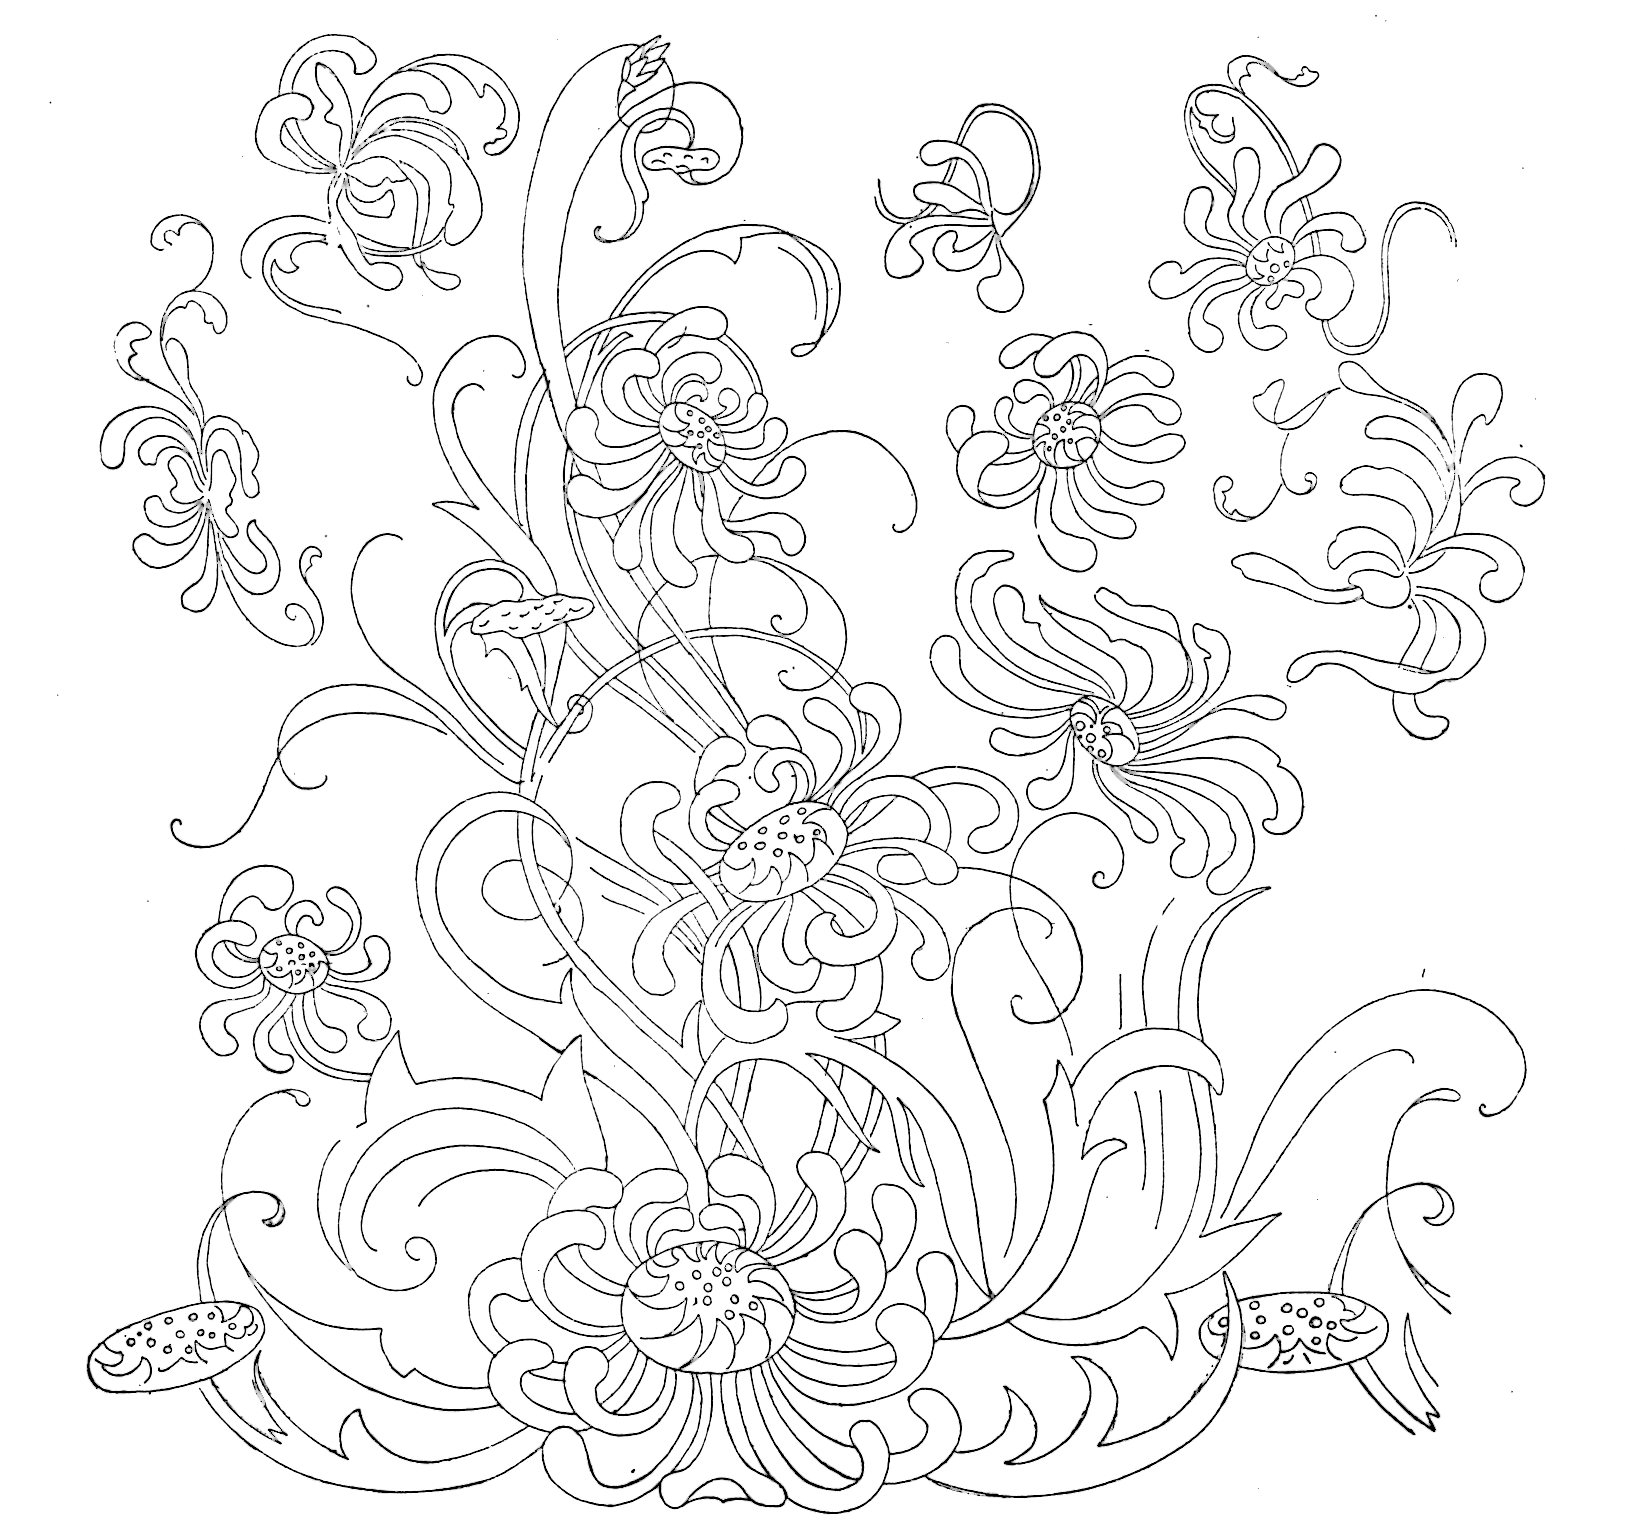 Embroidery Designs Patterns Free Embroidery Pattern Archives Vintage Crafts And More